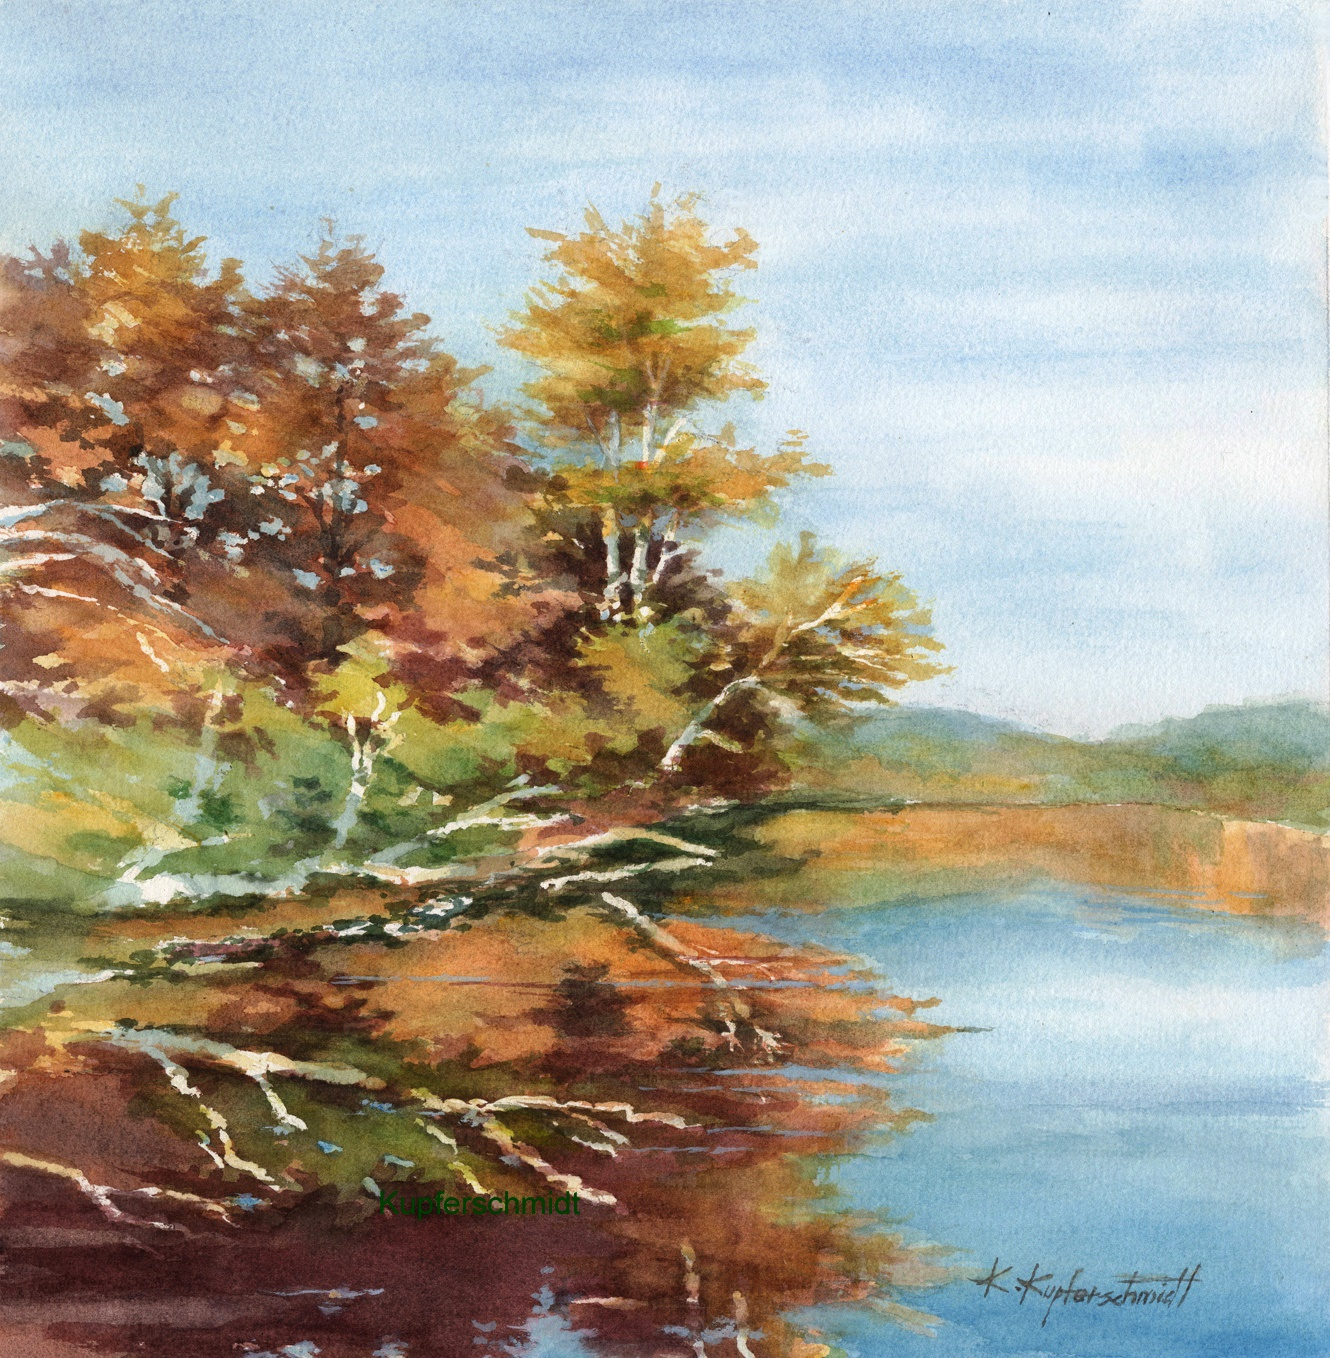 Kupferschmidt - Autumn Lake Shamineau 21x20 325